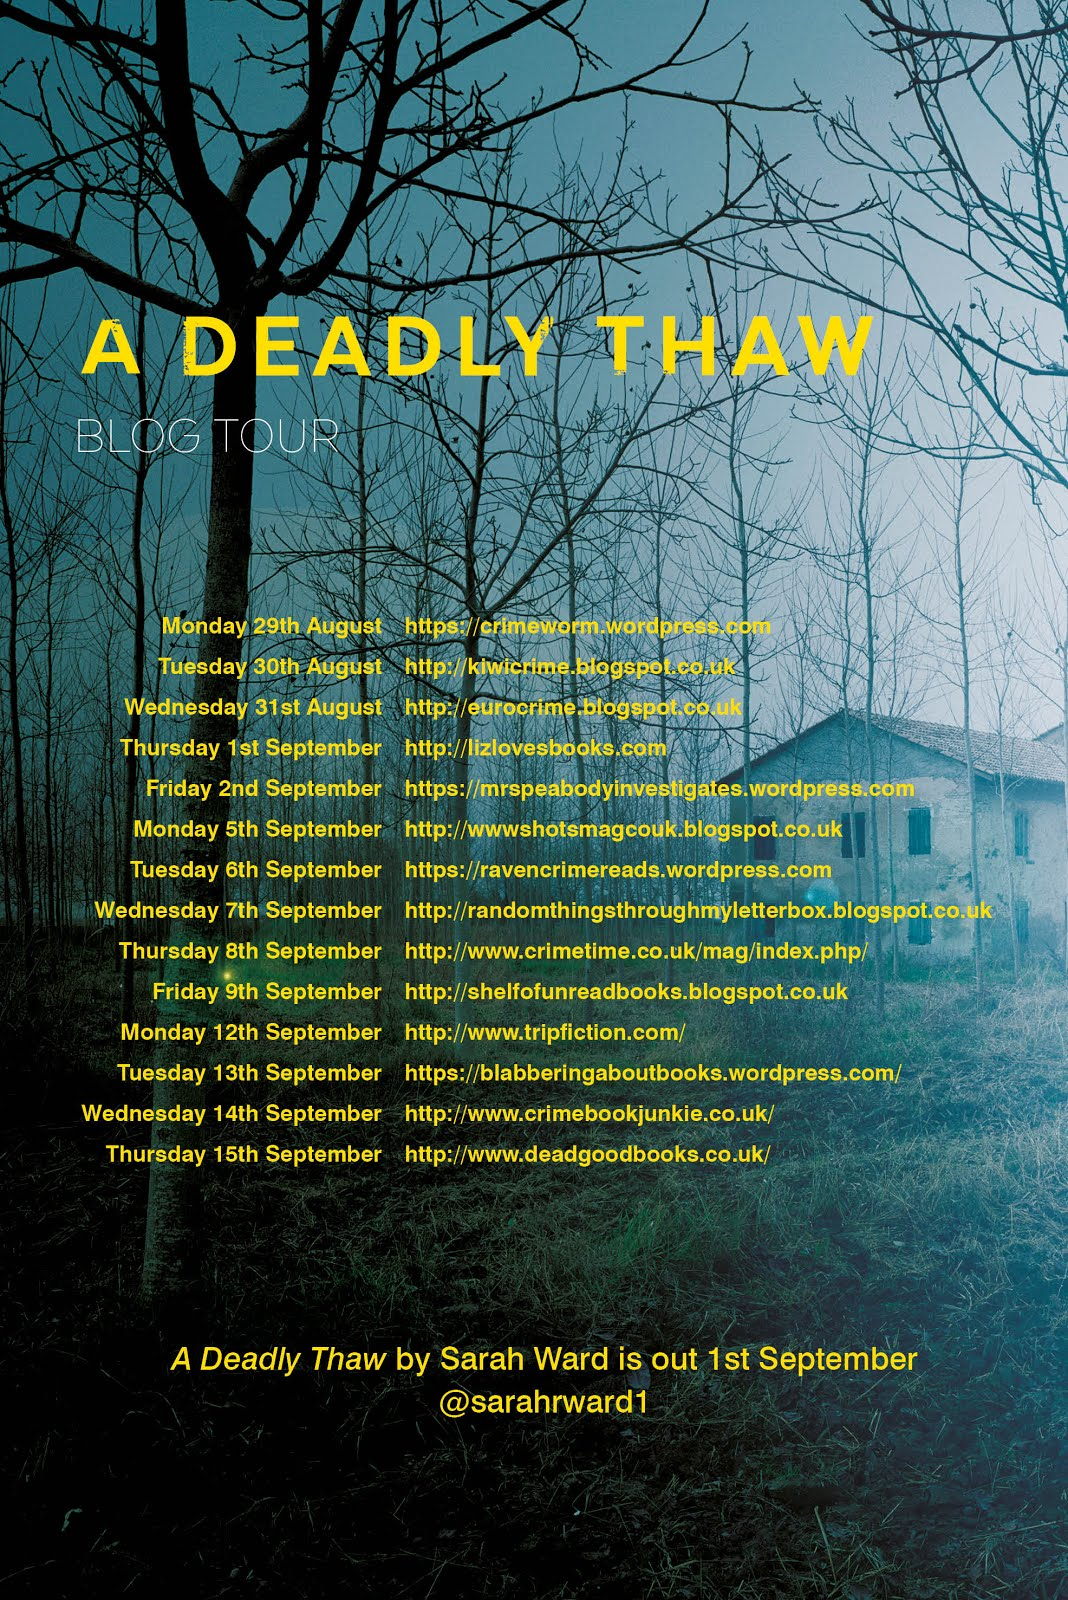 A Deadly Thaw - Blog Tour